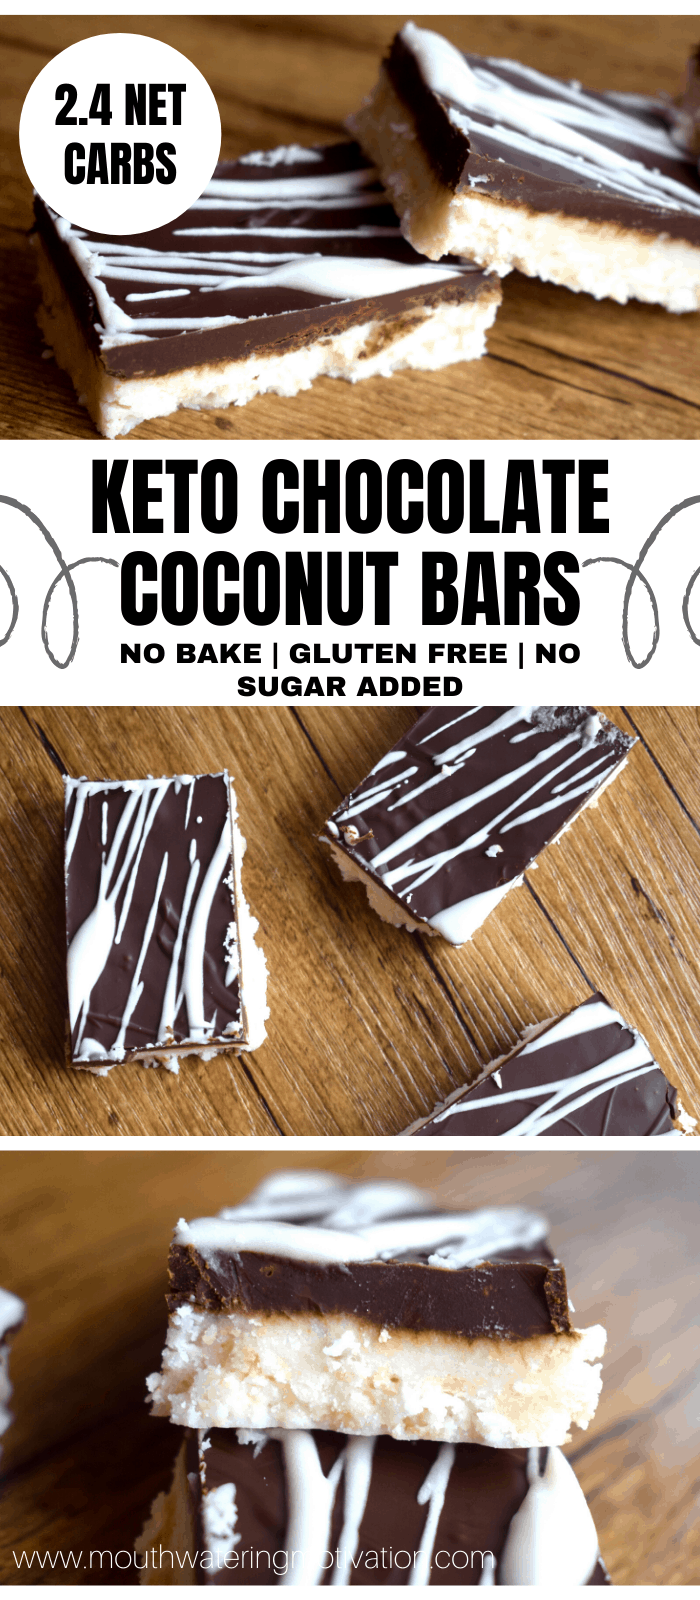 KETO CHOCOLATE COOCNUT BARS